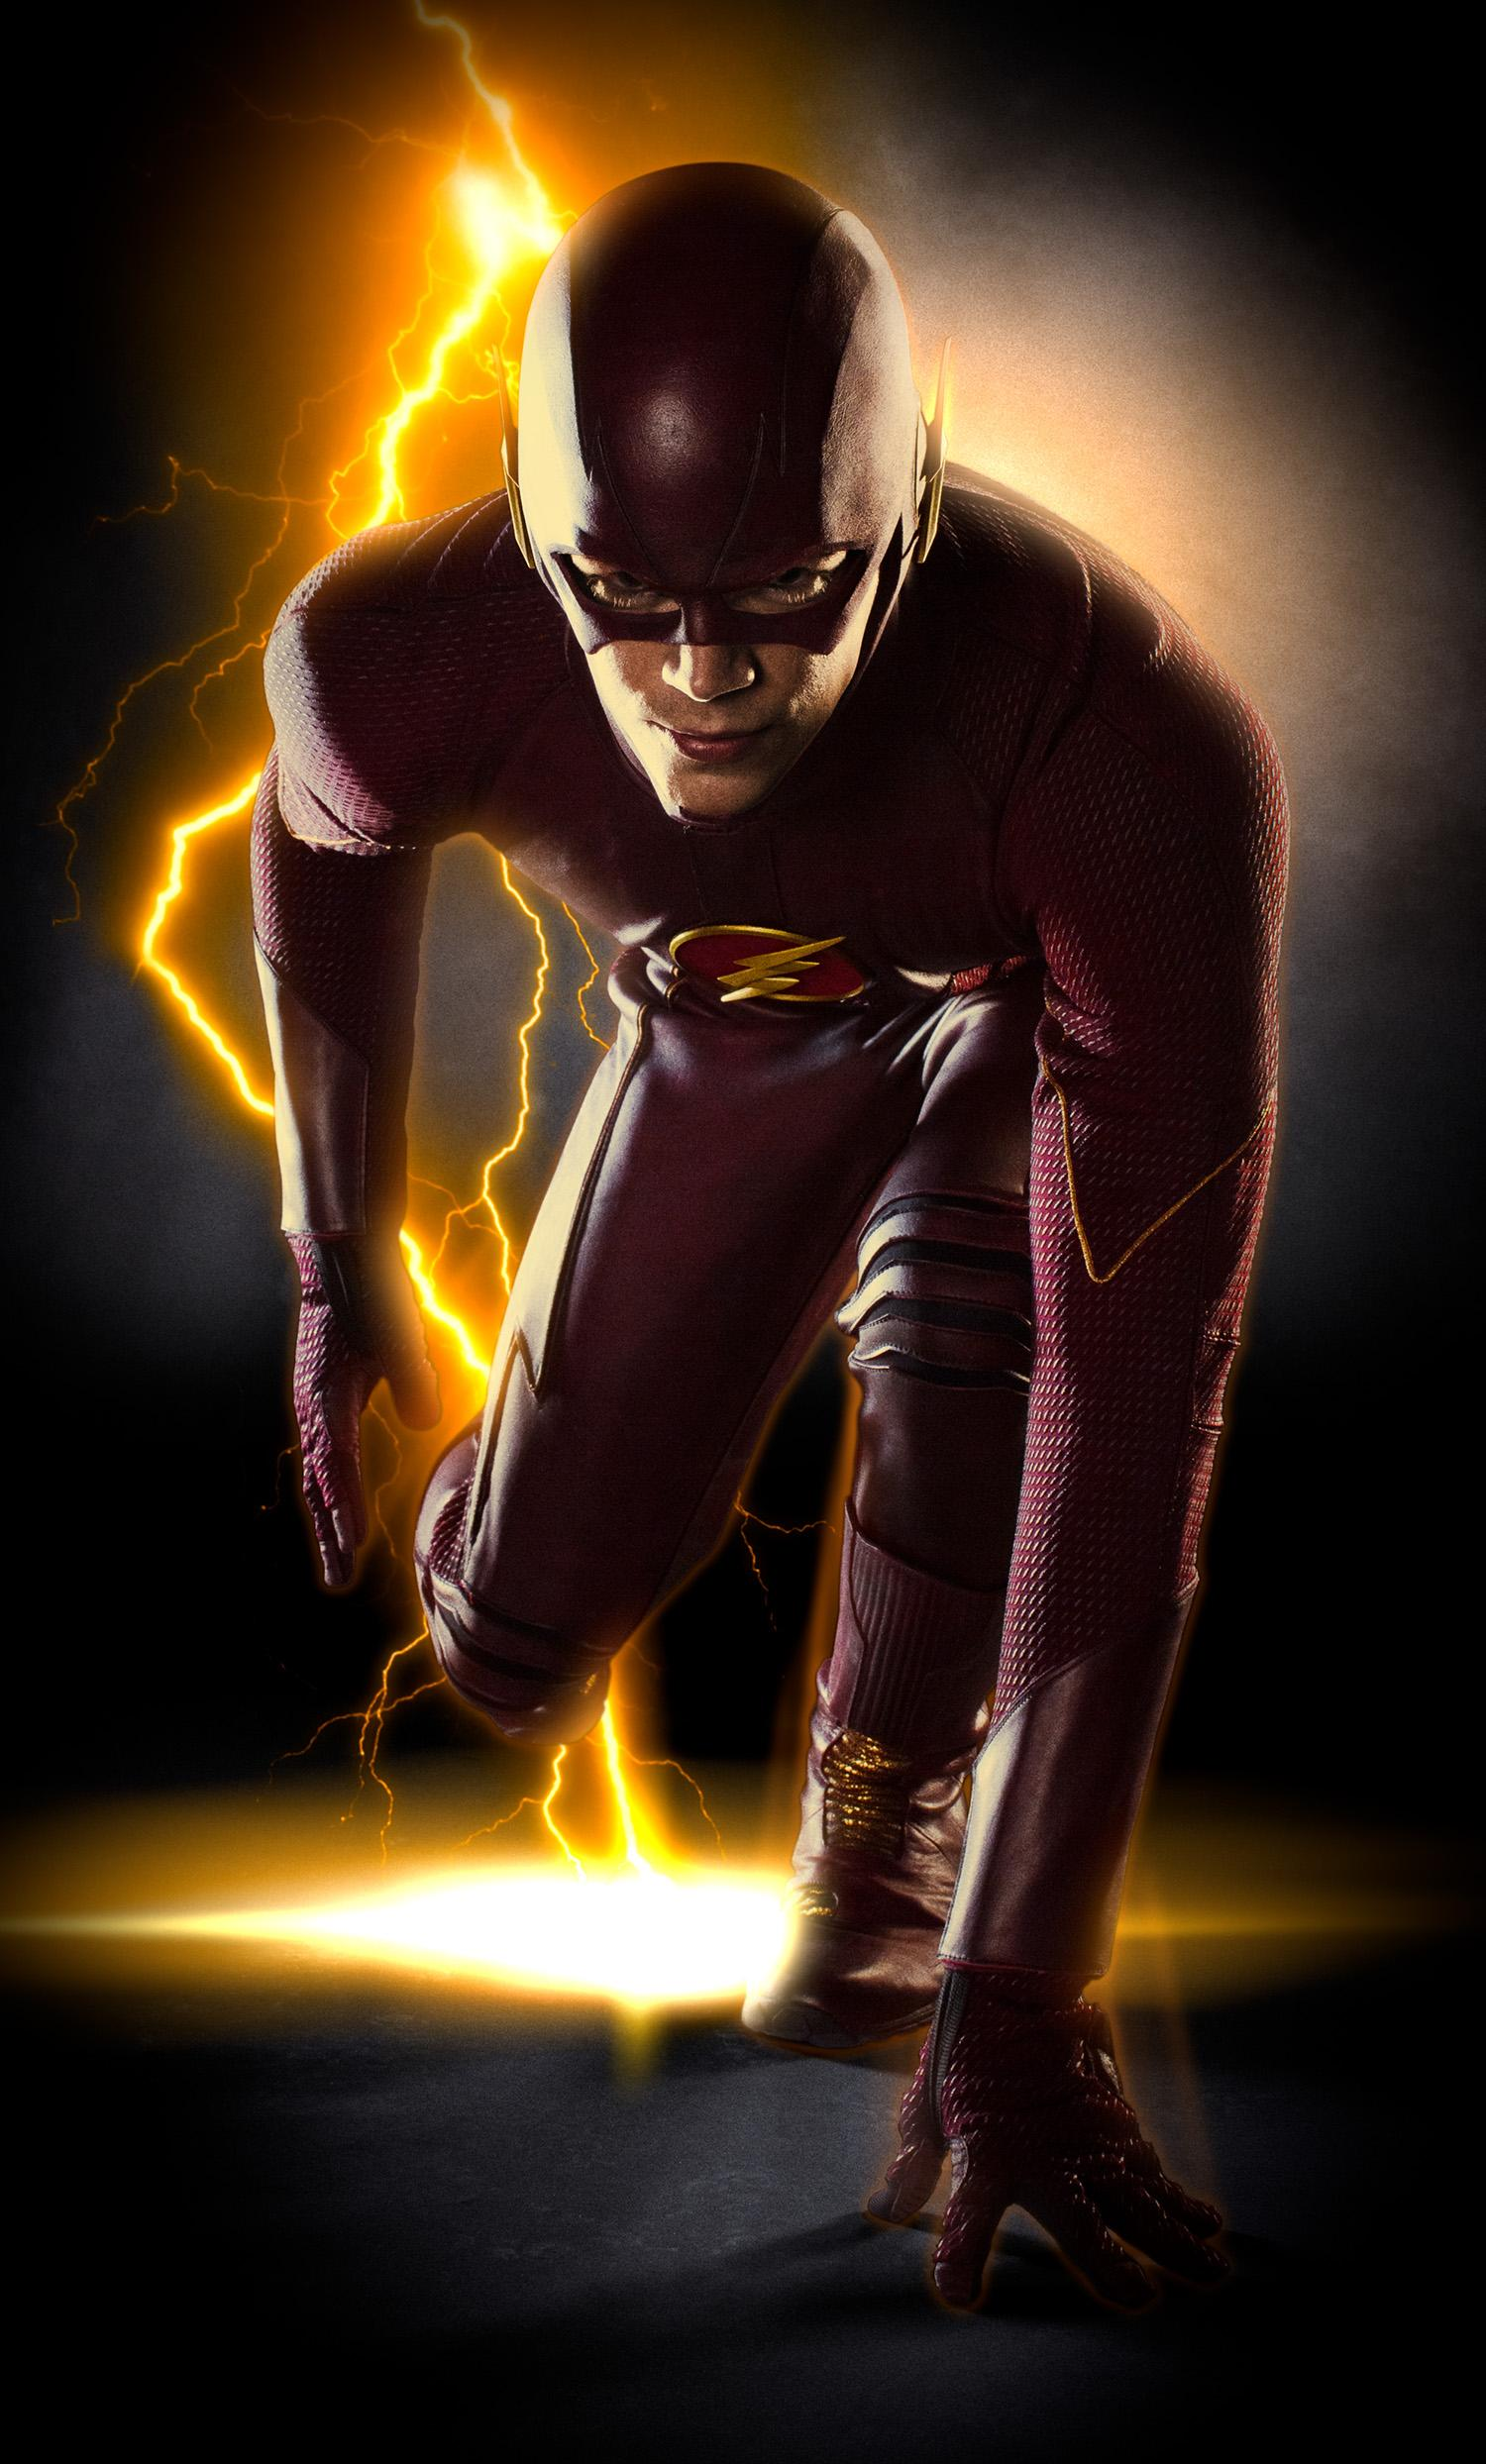 The Flash, saison 1